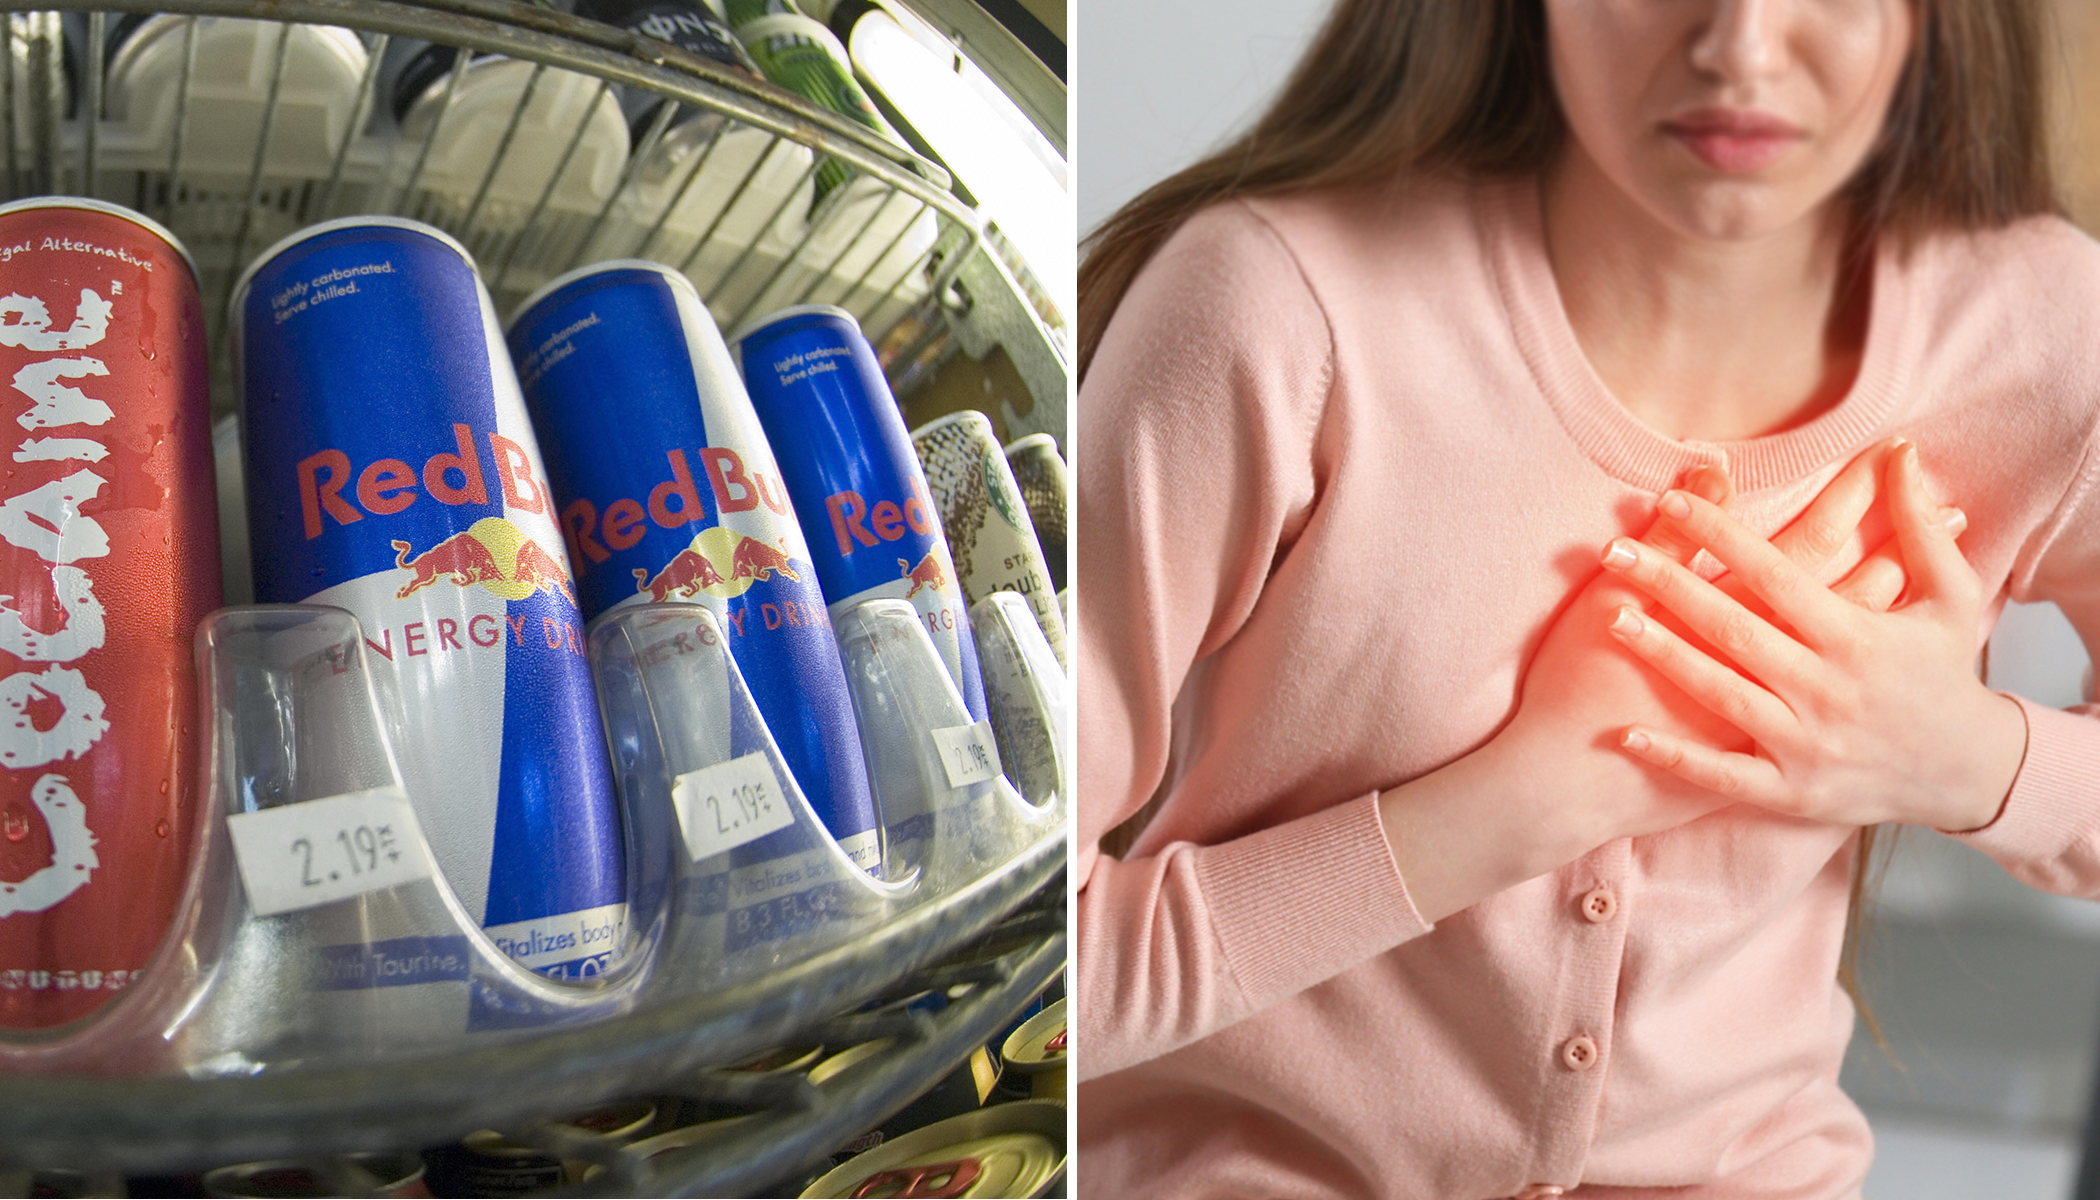 Grieving Mom Issues Warning After Husband Died After Consuming an Energy Drink